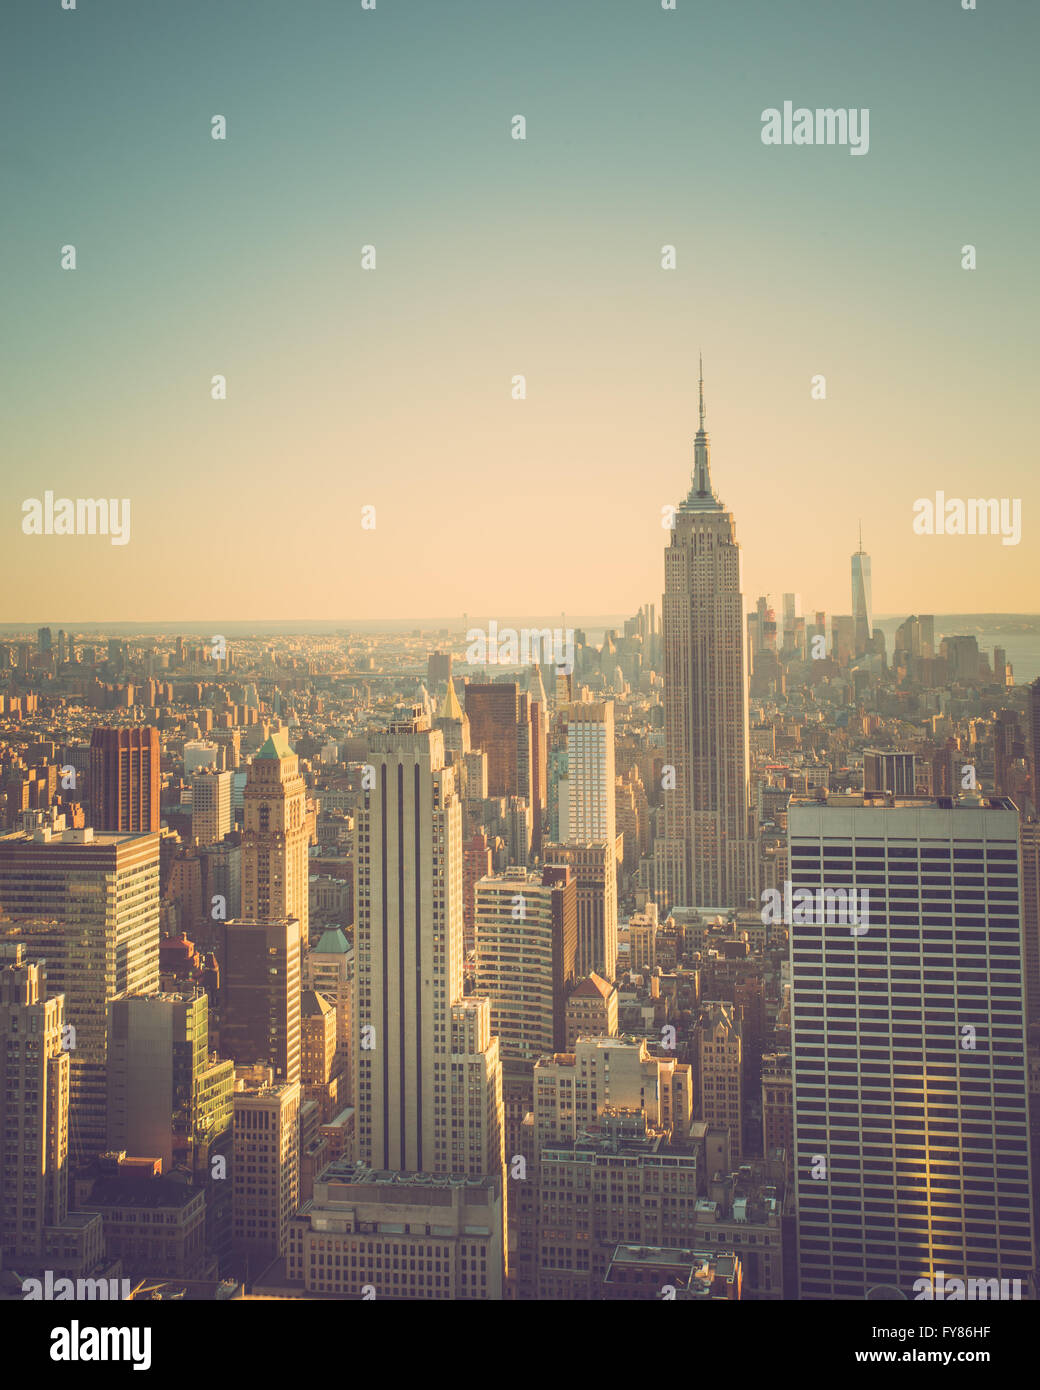 View across New York City at midtown Manhattan at sunset with vintage tone and Empire State Building - Stock Image